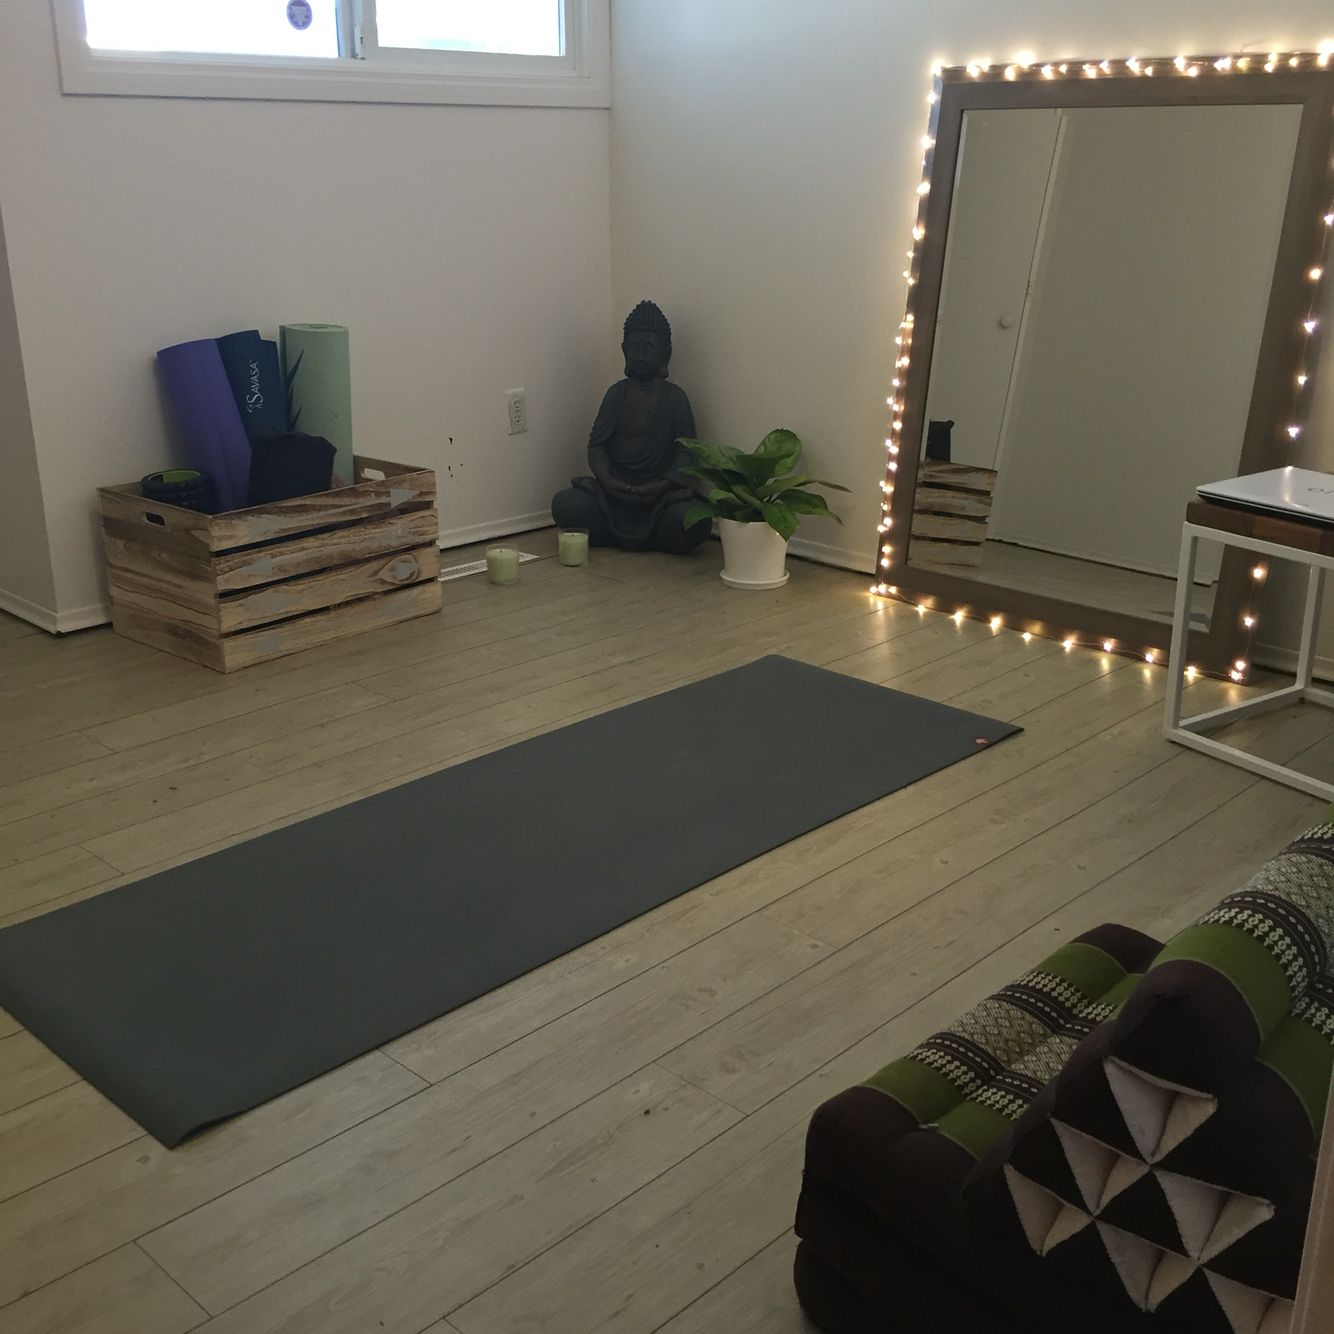 Beautiful Image Of Home Yoga Studio Design Ideas Interior Design Ideas Home Decorating Inspiration Moercar Home Yoga Room Gym Room At Home Meditation Rooms